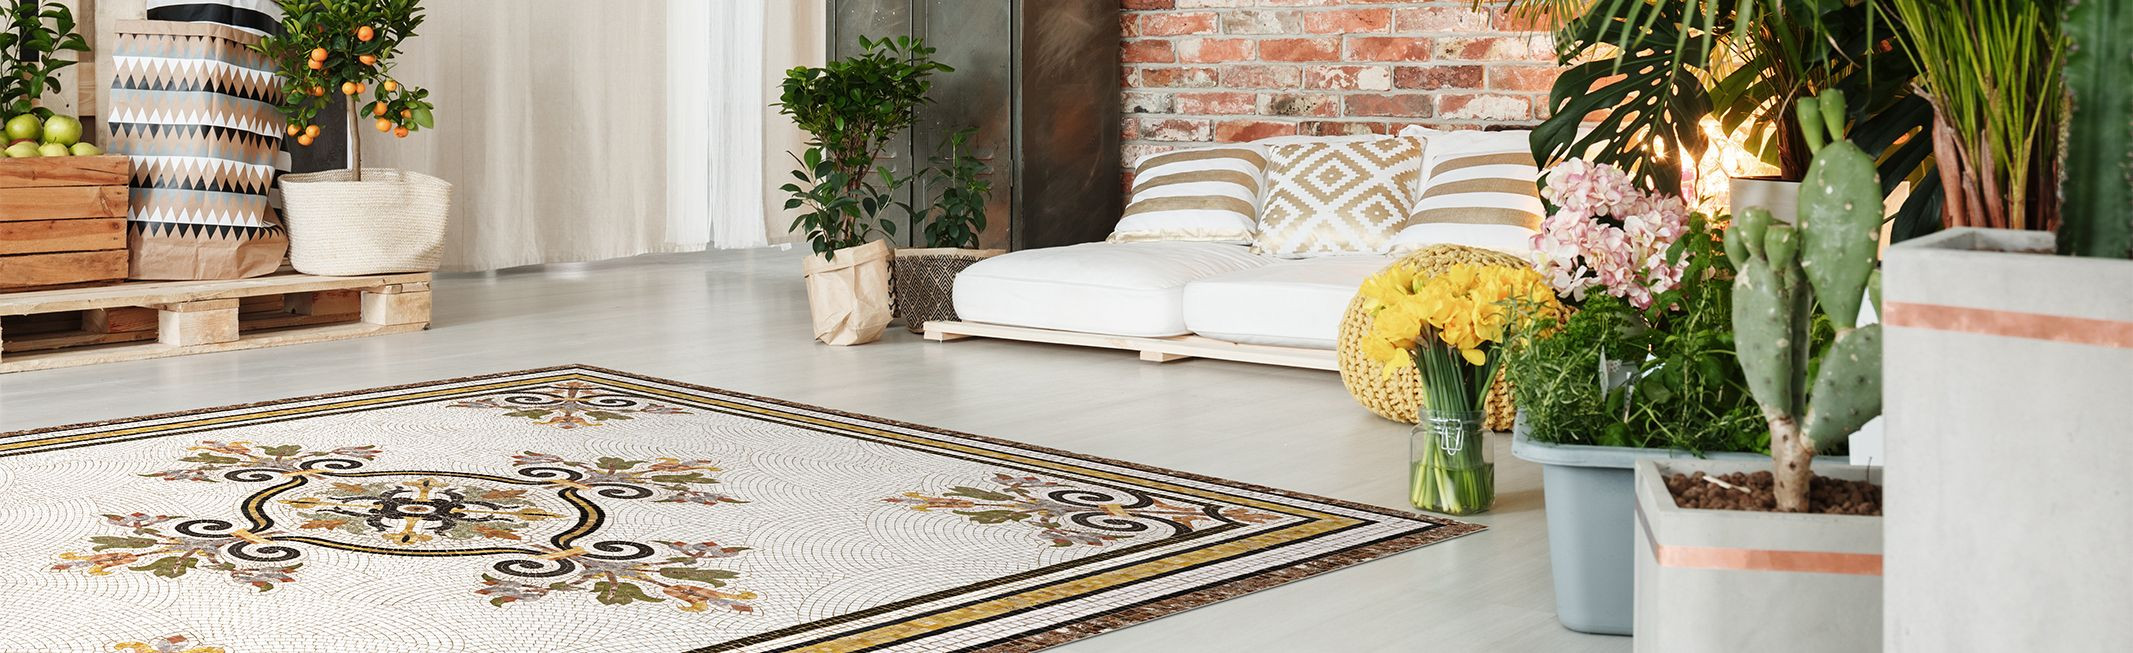 Collection tapis vinyles